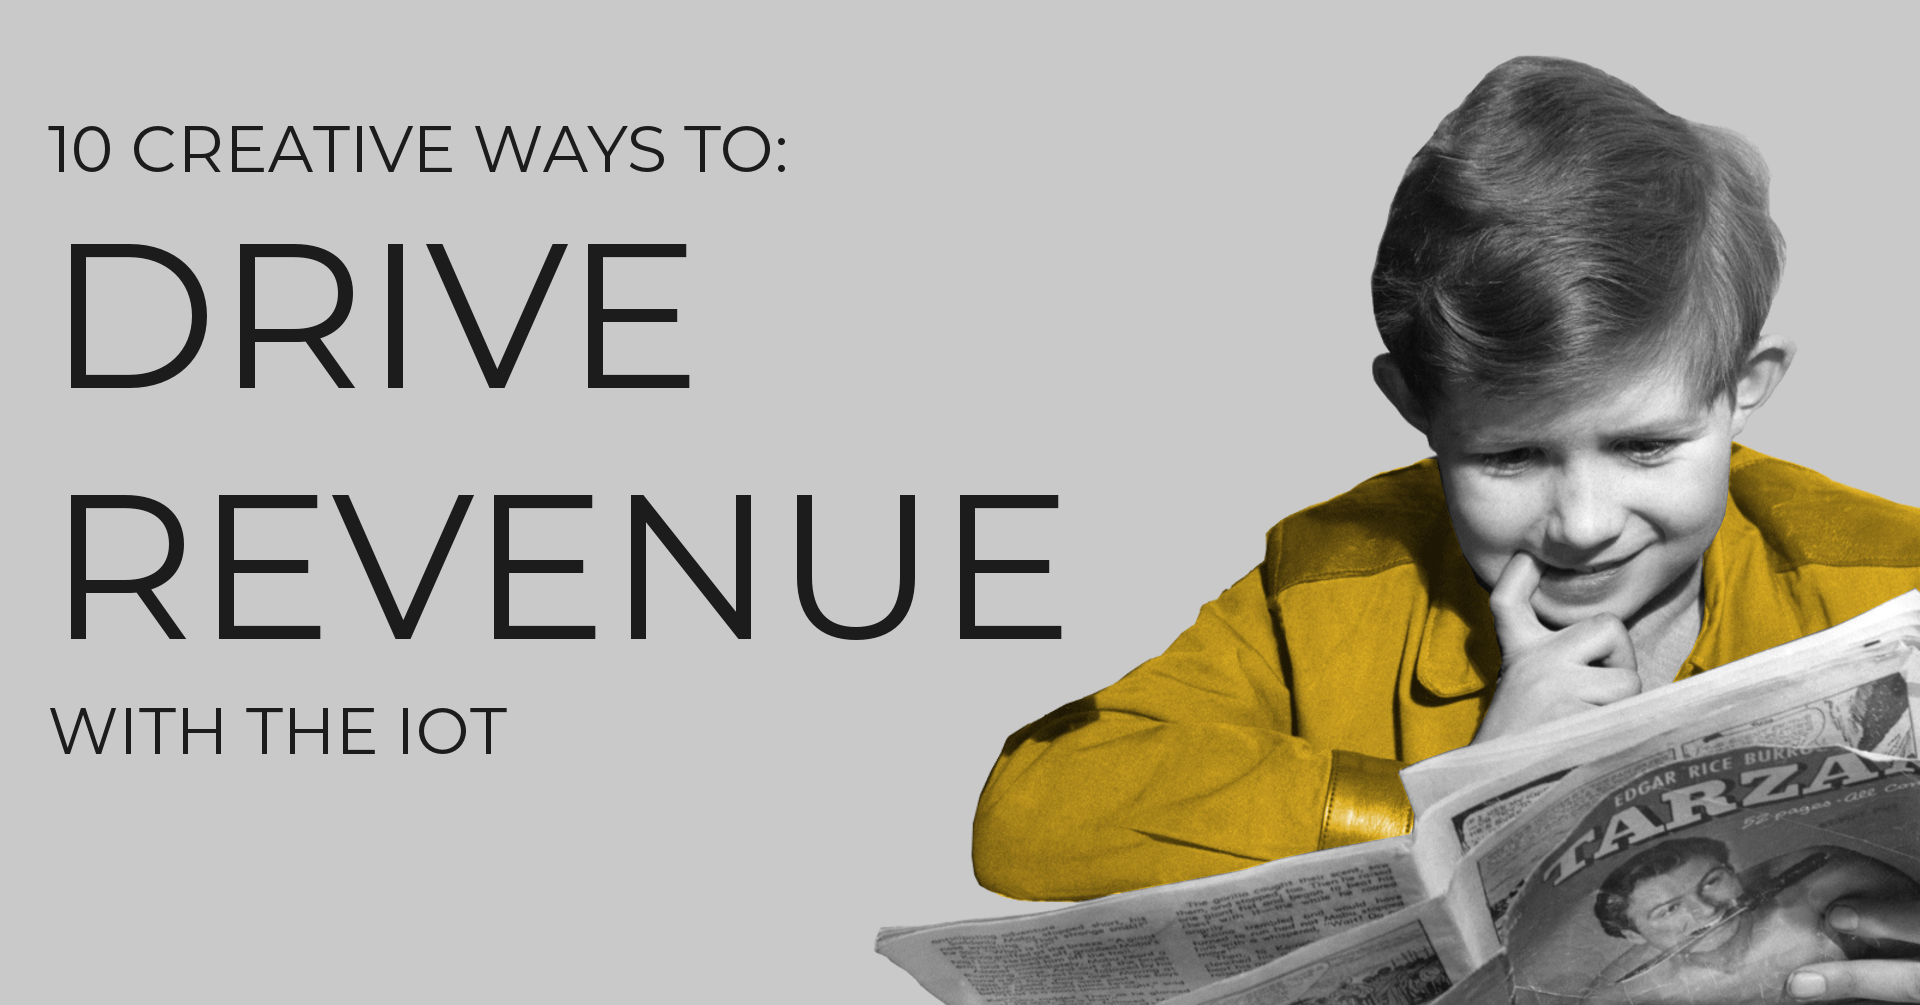 10 Creative Ways to Drive Revenue with the IoT